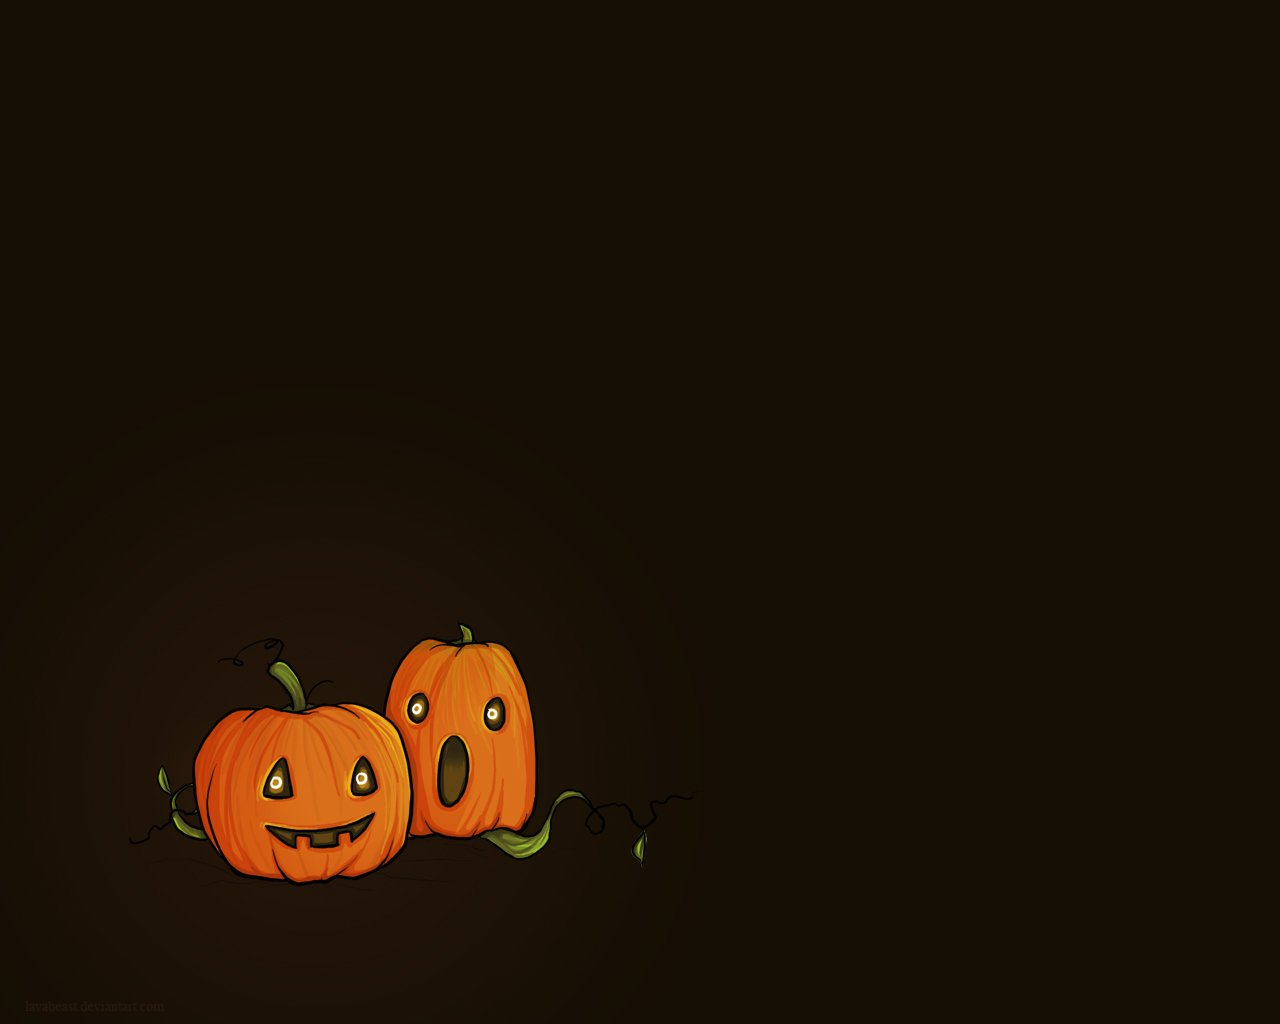 Cute Halloween Backgrounds at Cool Monodomo 1280x1024